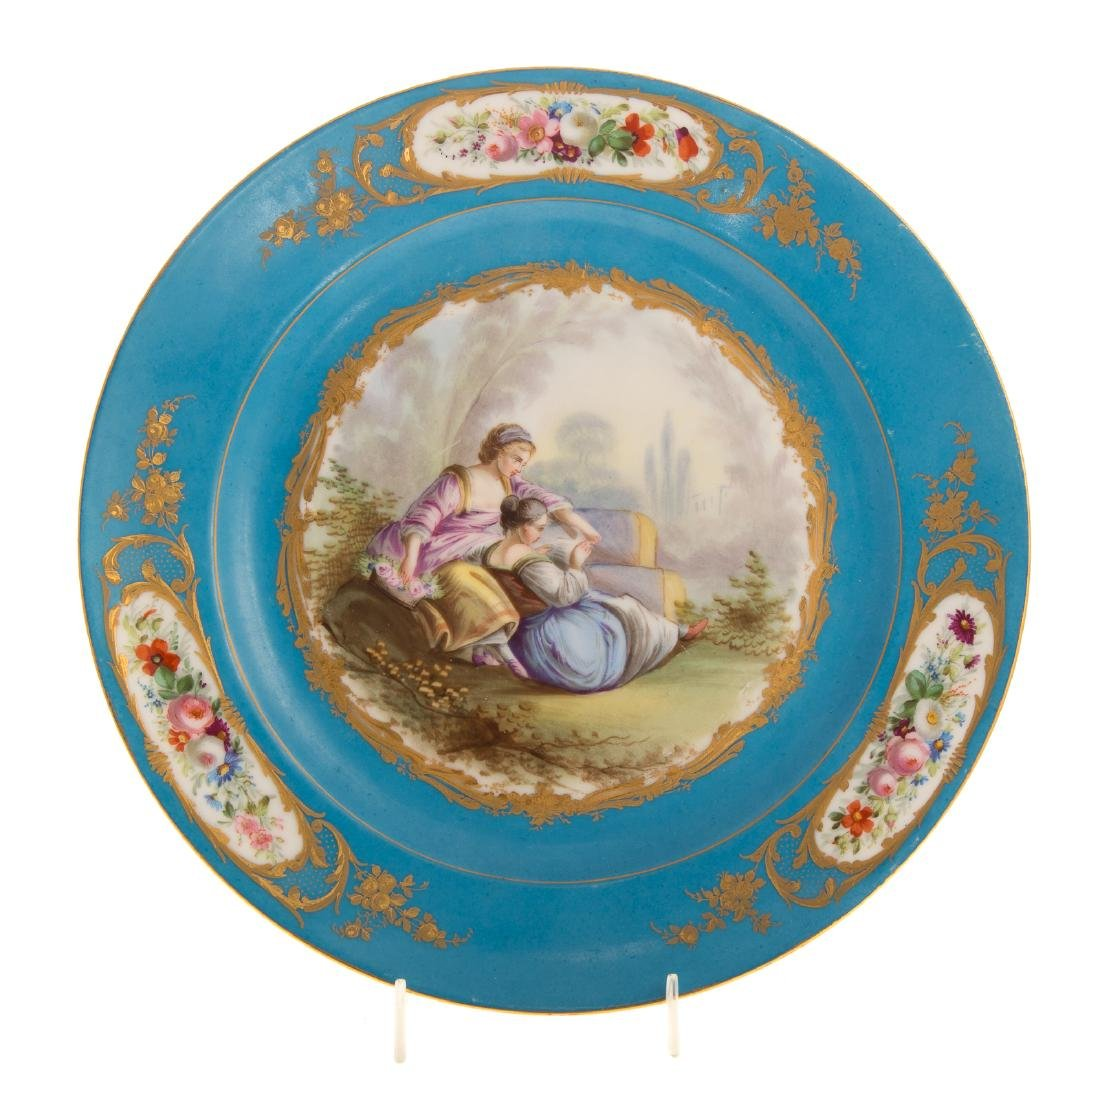 12 Sevres porcelain plates and charger - 6